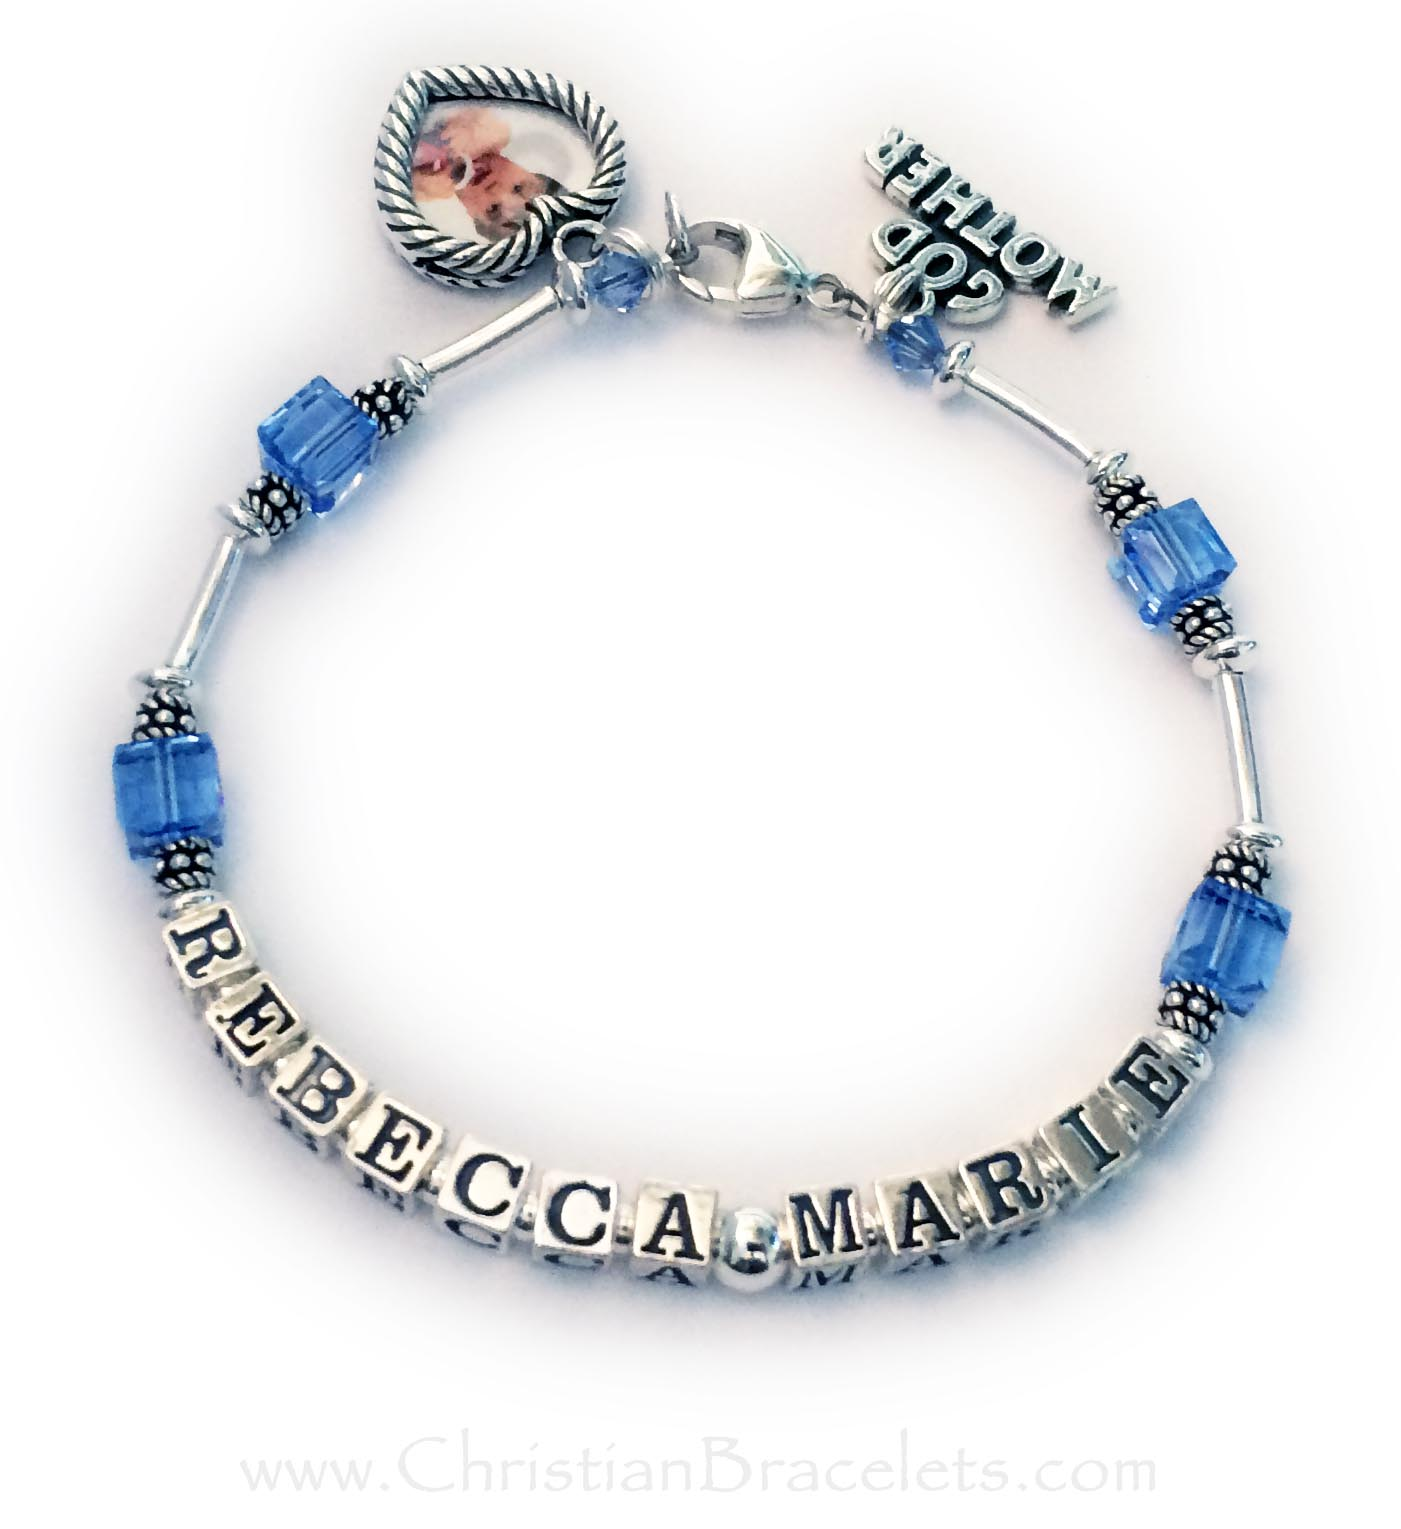 This Godmother bracelet has the God Child's name writtten on it and the Godchild's birthstone crystals. Sapphire or September Birthstone Crystals are shown. This bracelet is shown with one of my free lobster claw clasps. They added 2 charms: a GodMother charm and a Heart Picture Frame Charm. I would be happy to insert the pictures for you. Just send me the images after you place your order. The Square and Heart picture frame charms will hold 2 pictures (front and back).